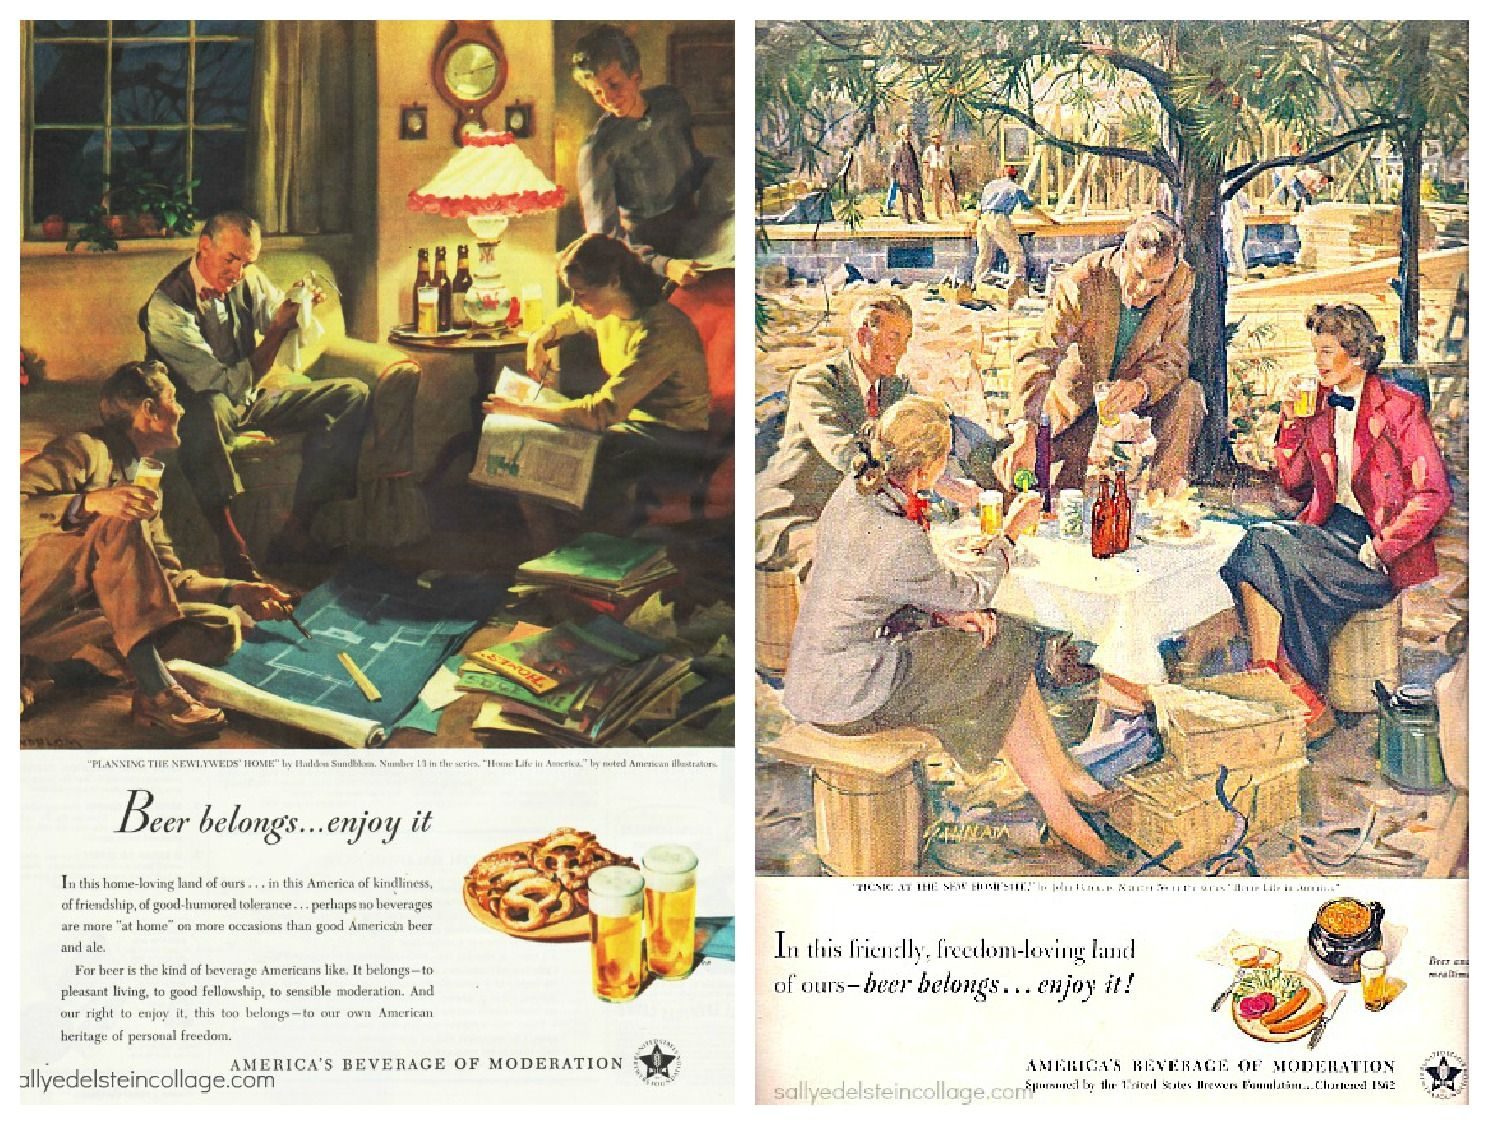 Vintage Ads 1950s | vintage illustration retro beer ads suburbia 1950s